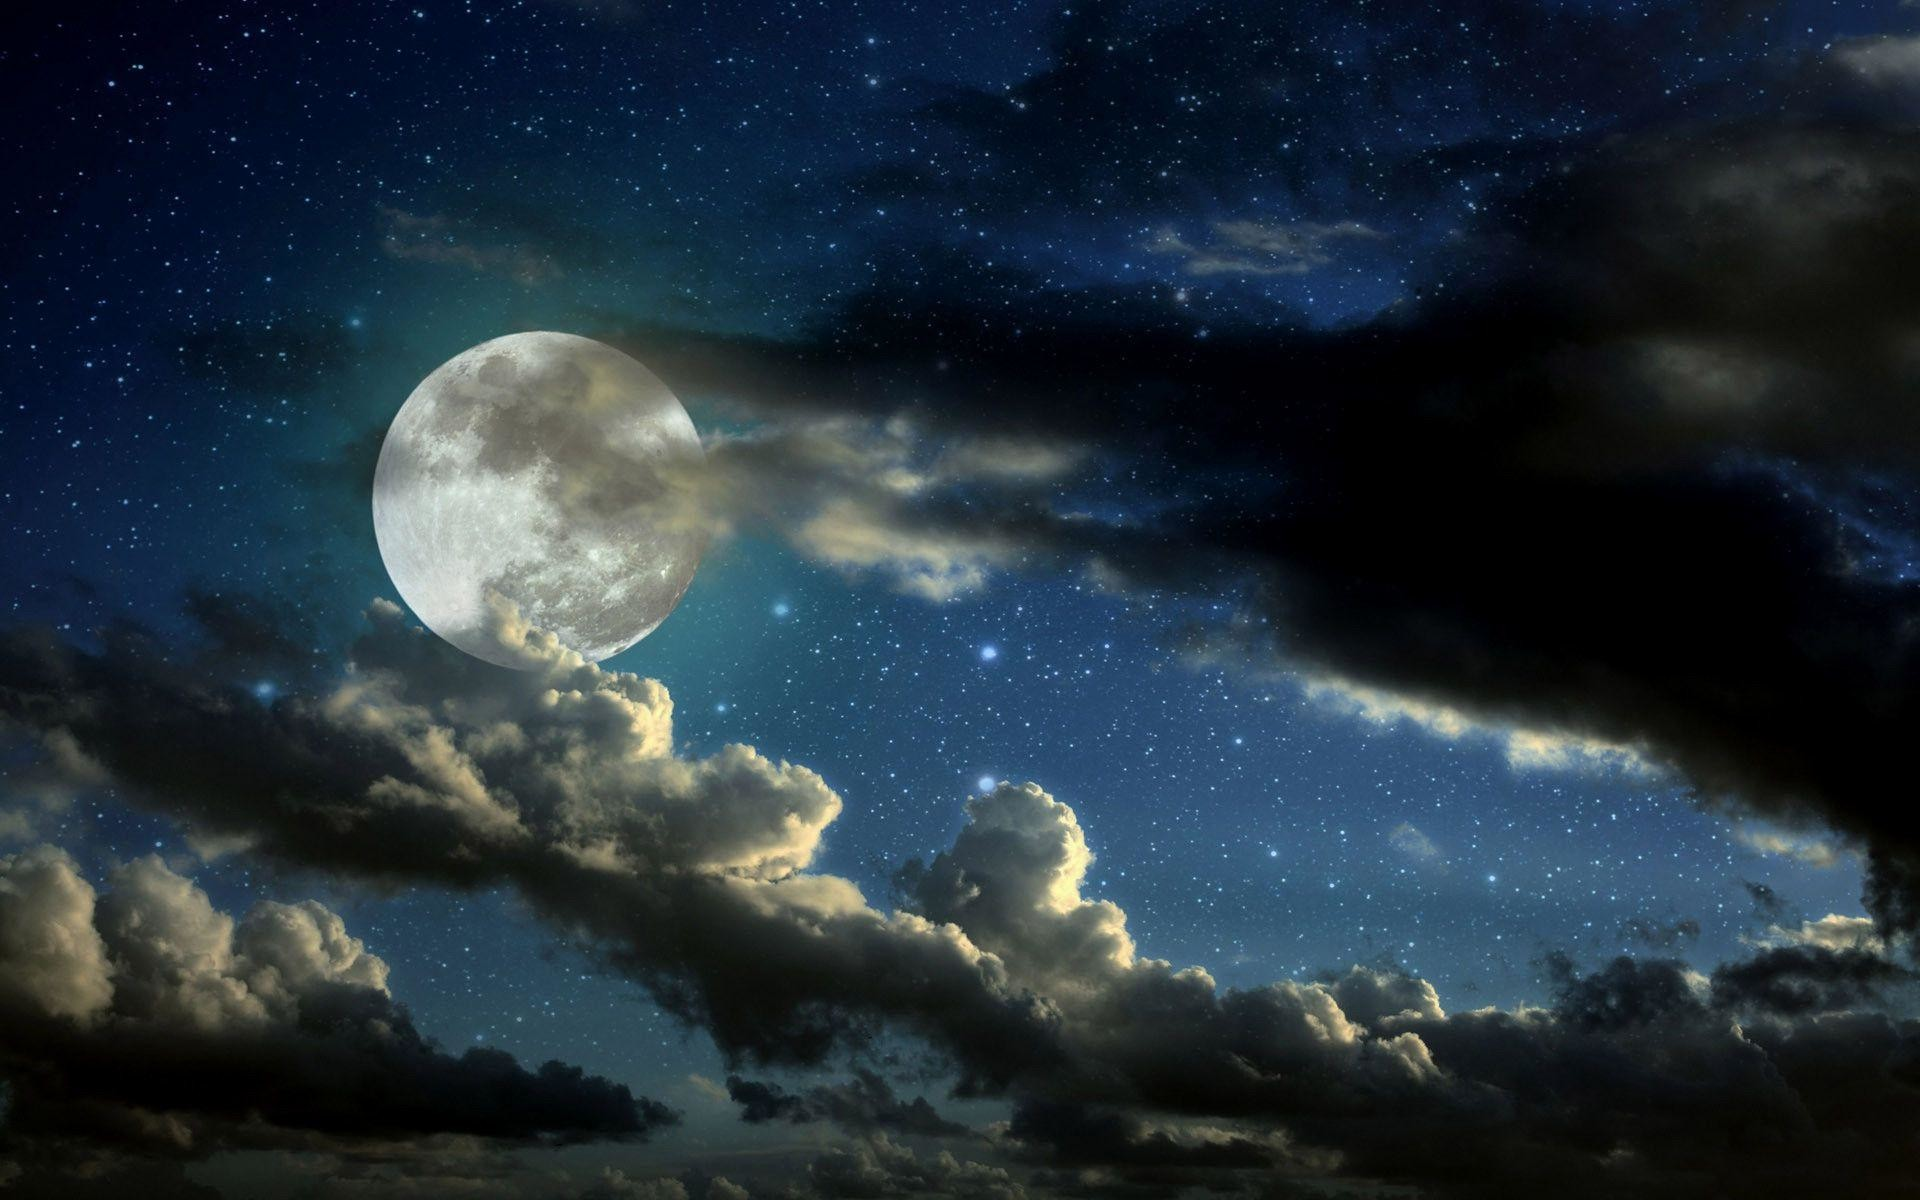 1920x1200 wallpaper.wiki-Desktop-Night-Sky-HD-Wallpapers-Download-